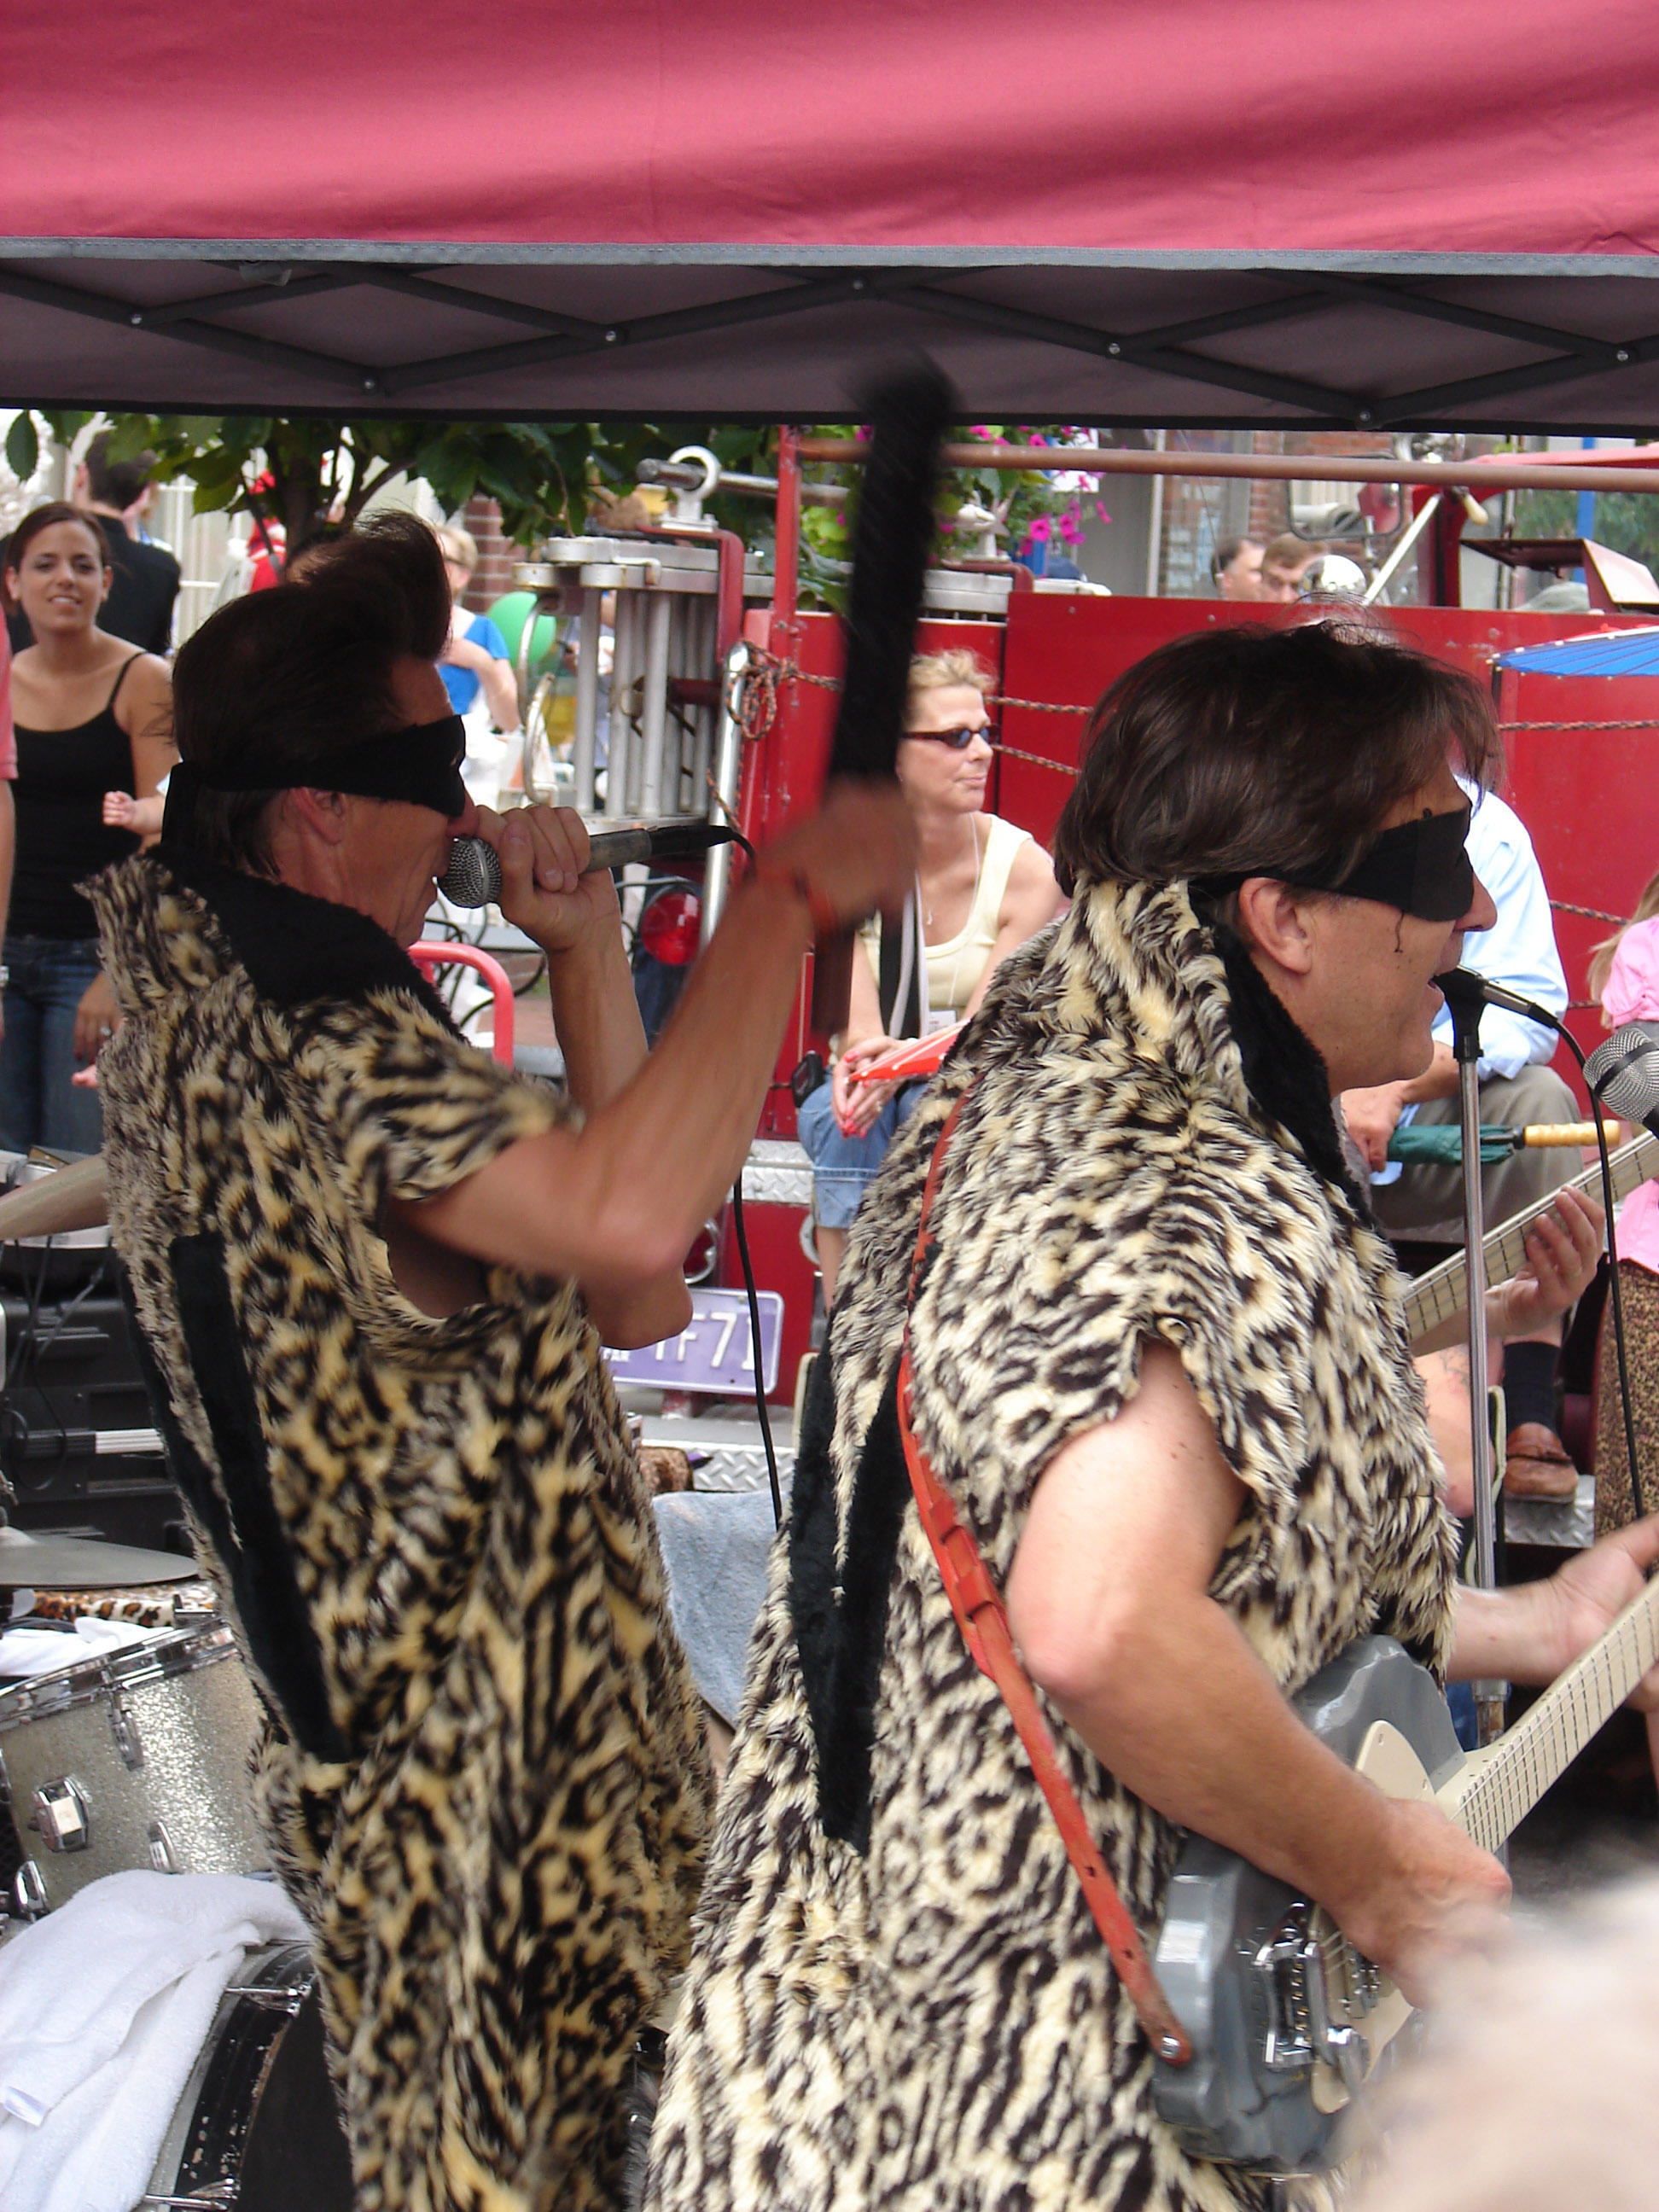 A Band of Neanderthals plays a gig at the Blobfest